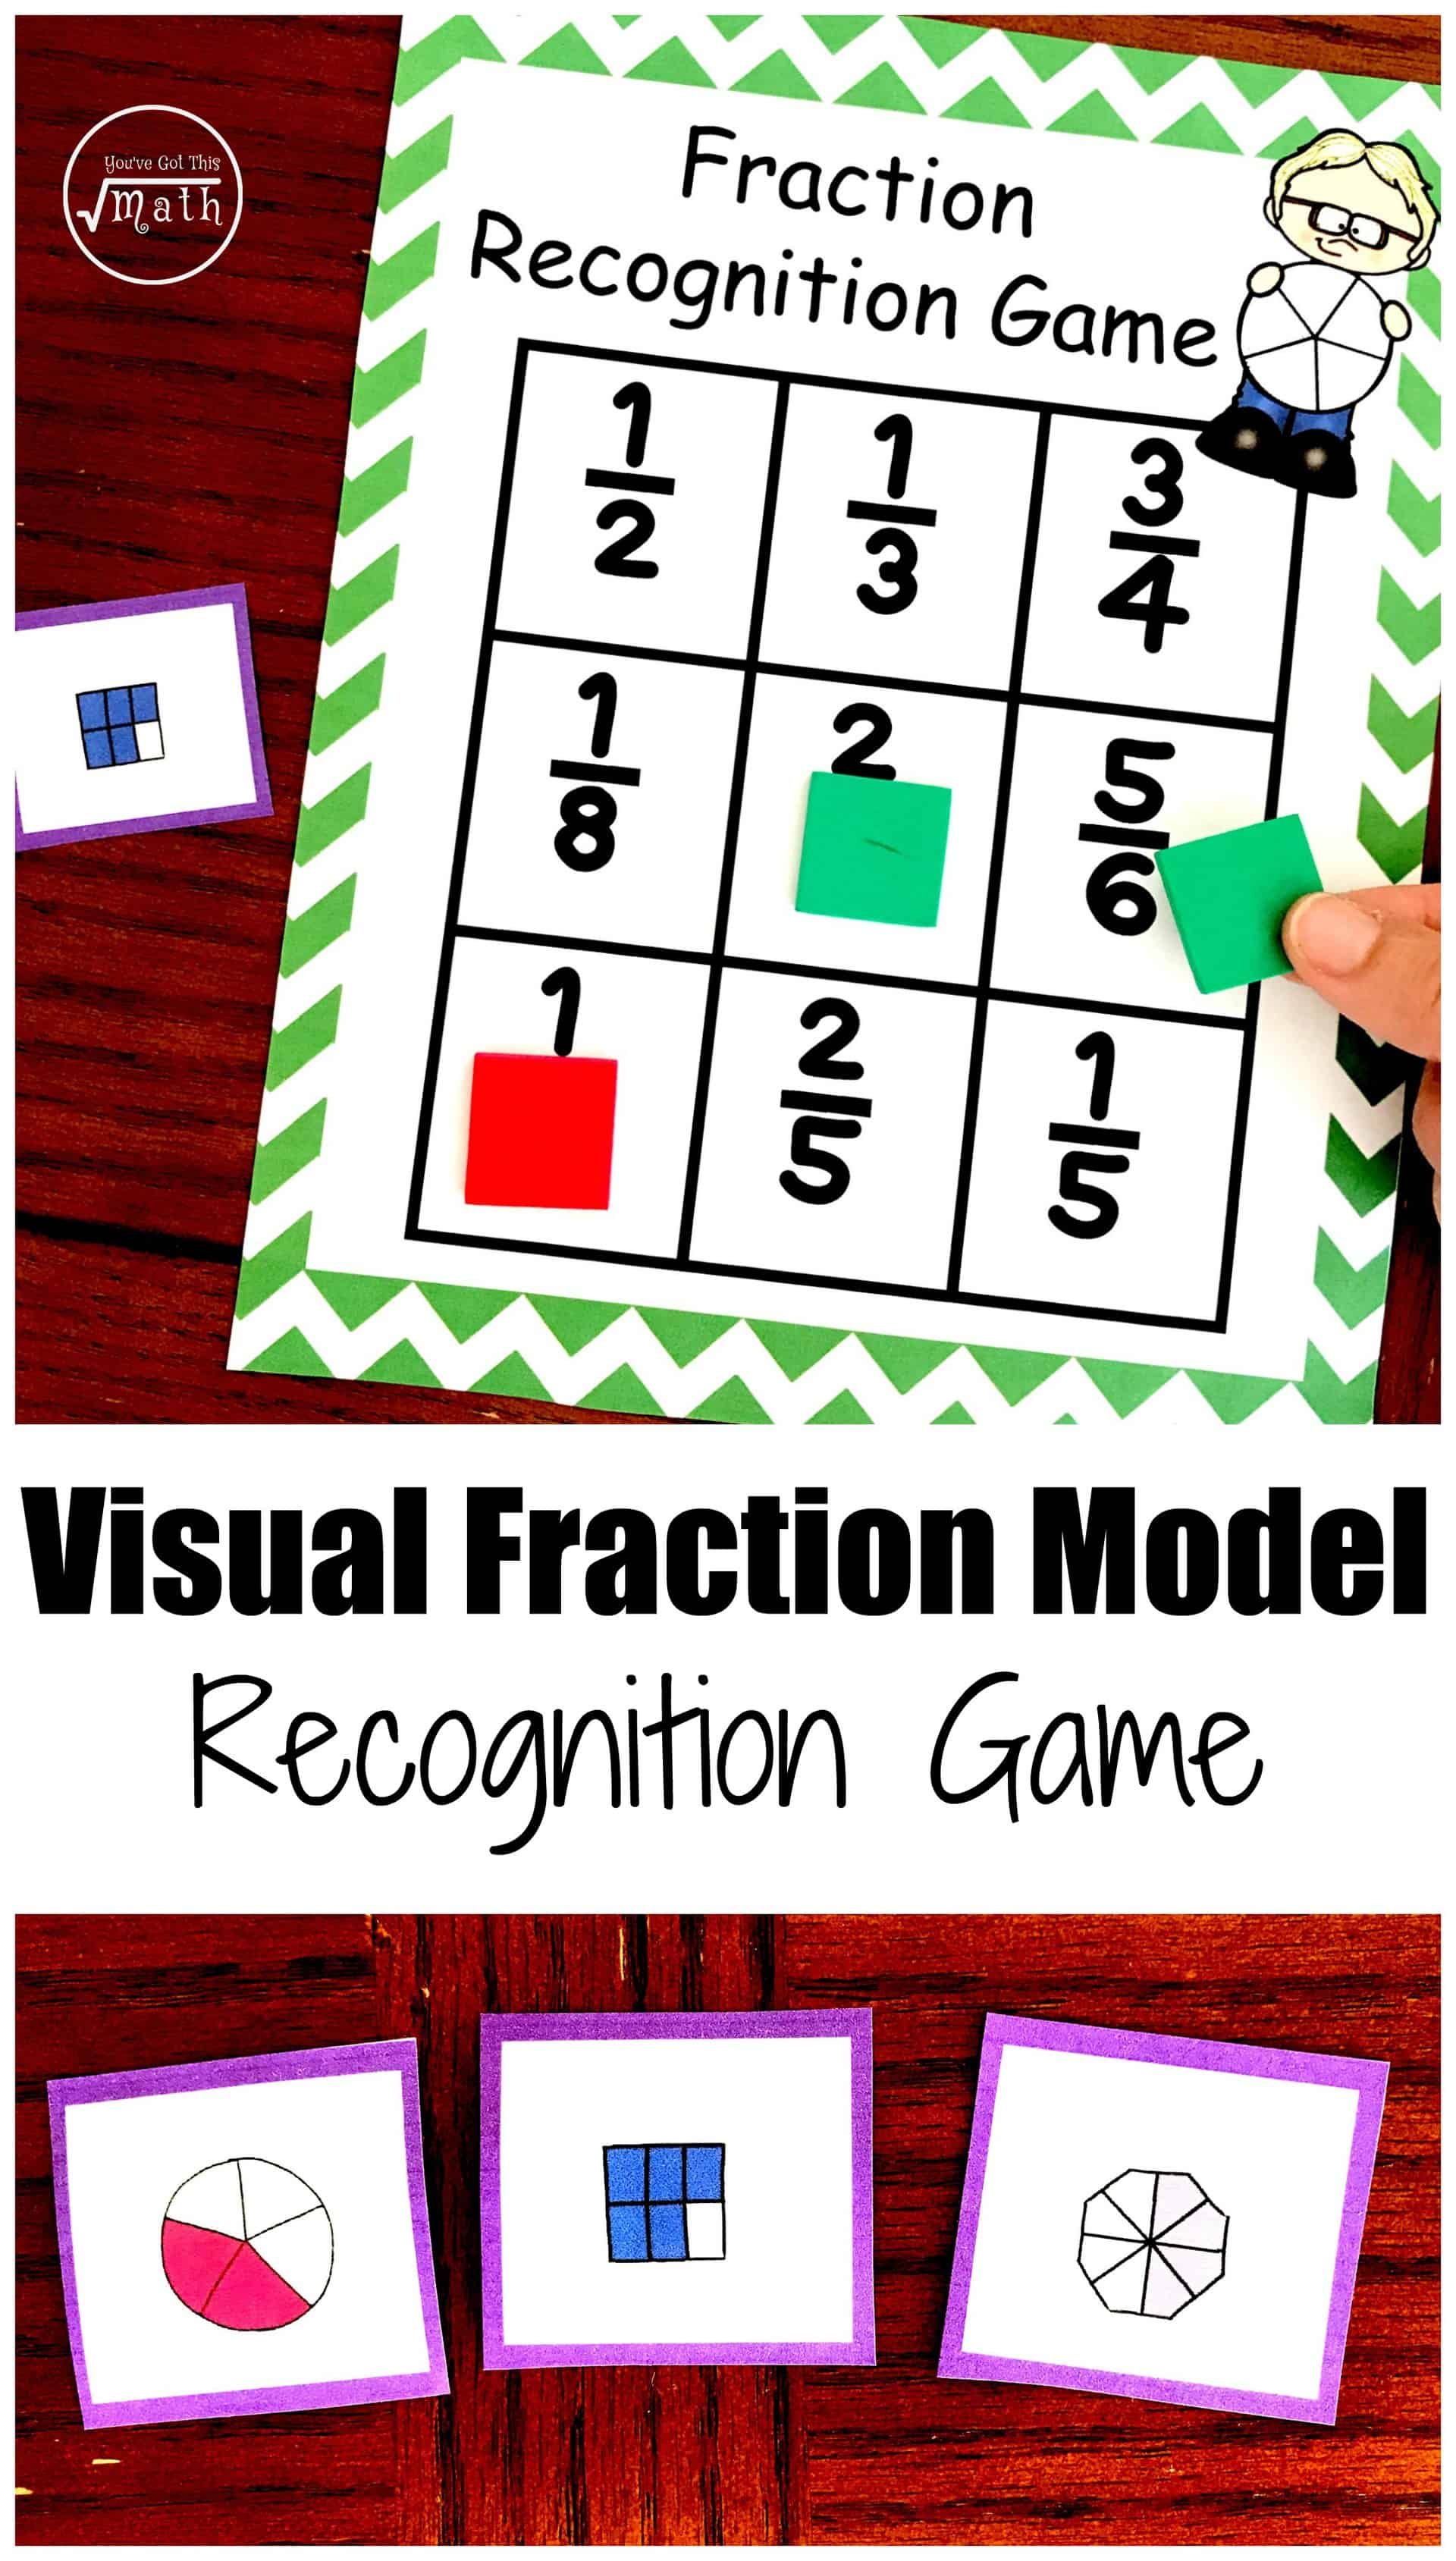 Visual Fraction Models are a great way to introduce children to fractions. This fraction game helps children recognize fractions and this visual model.